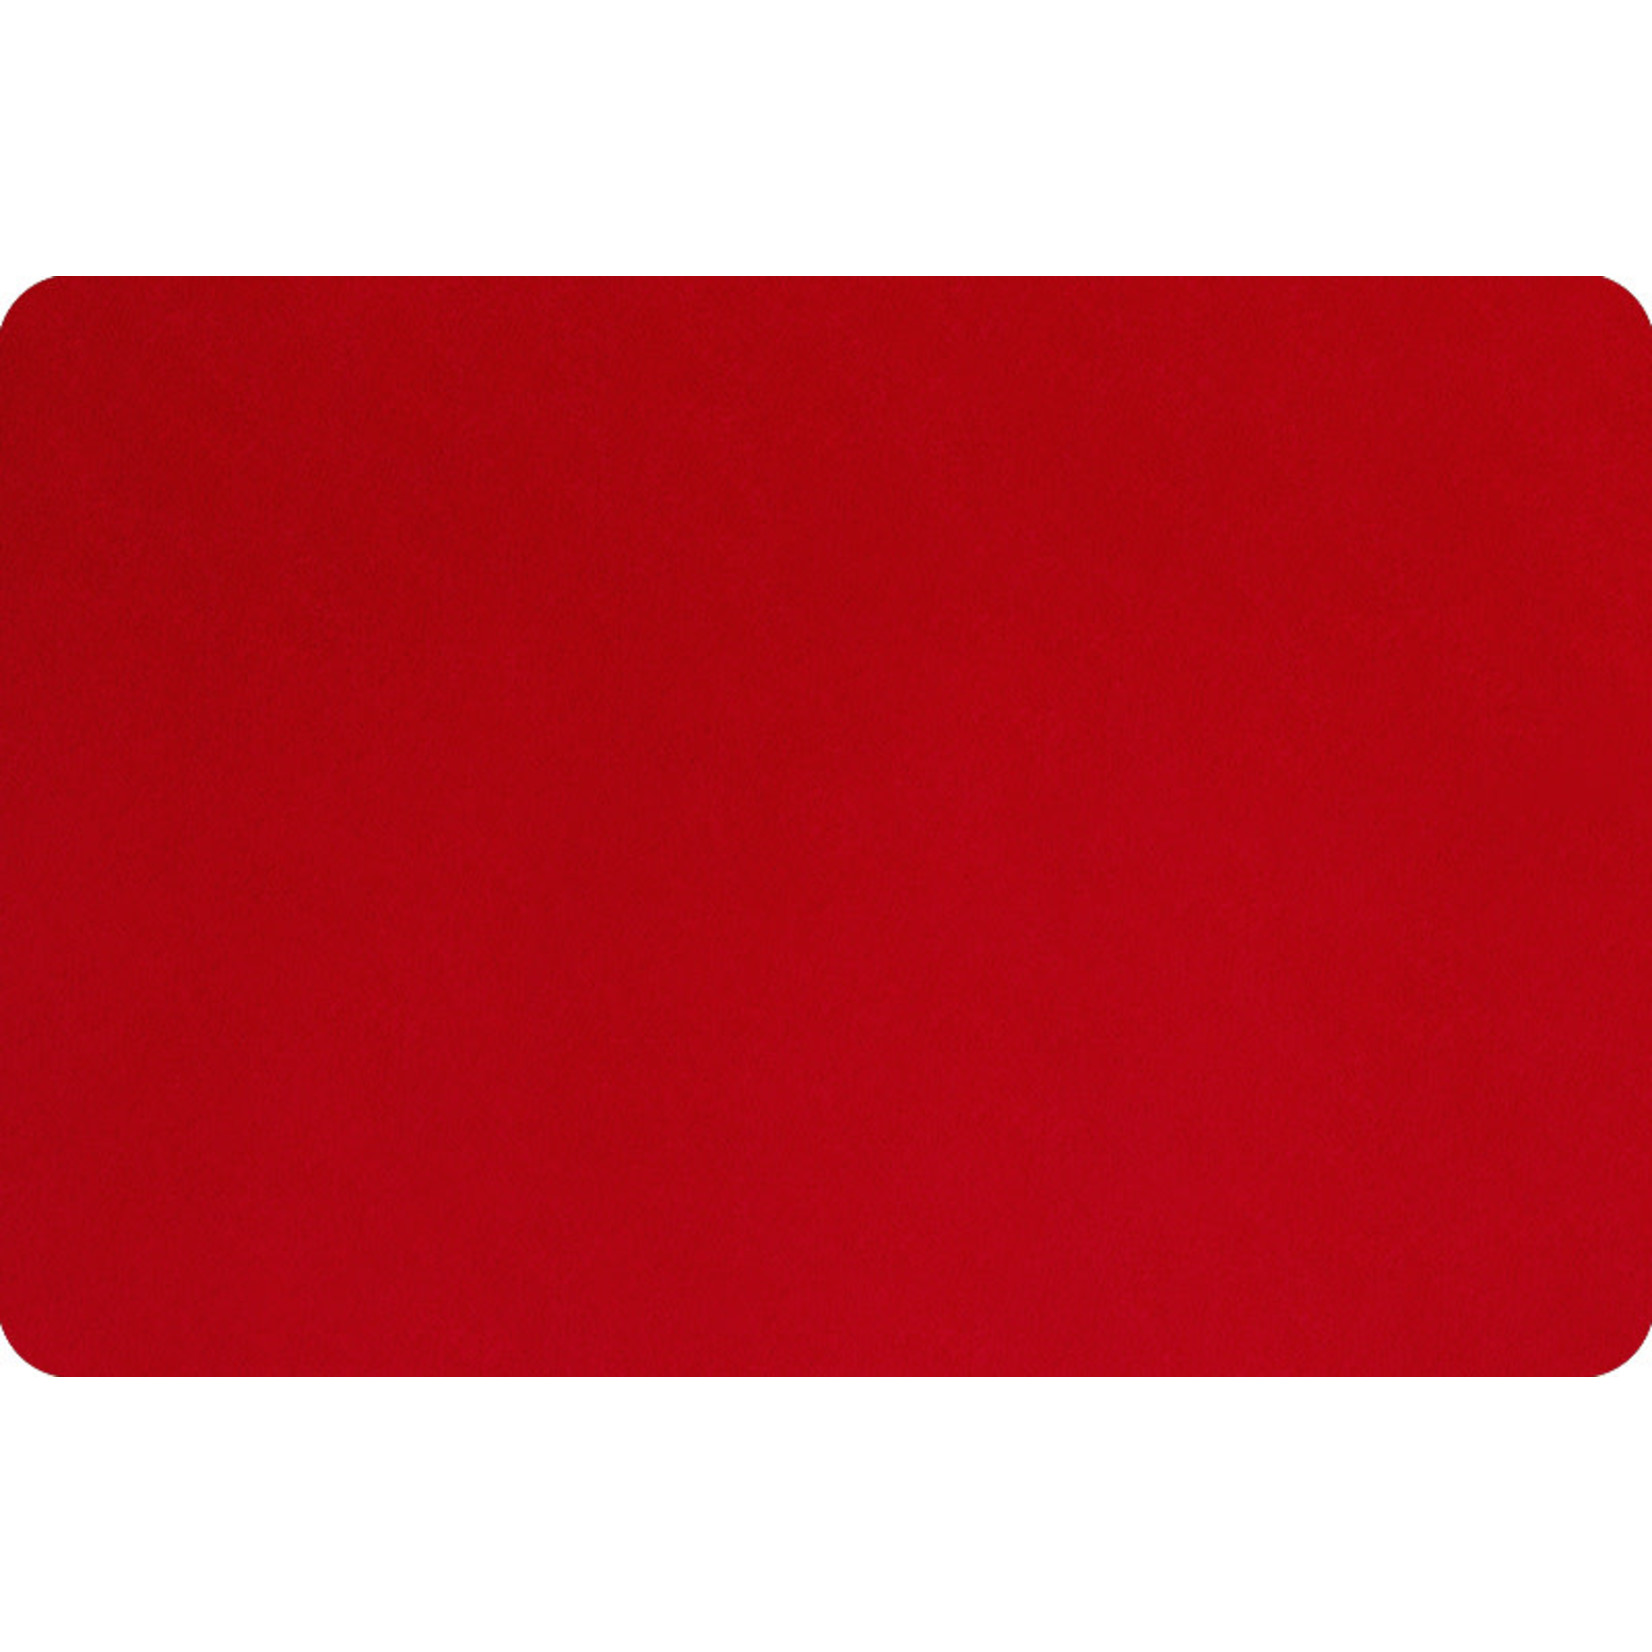 """Shannon Fabrics Minky, Extra Wide Solid Cuddle3, 90"""" Scarlet, (by the inch)"""